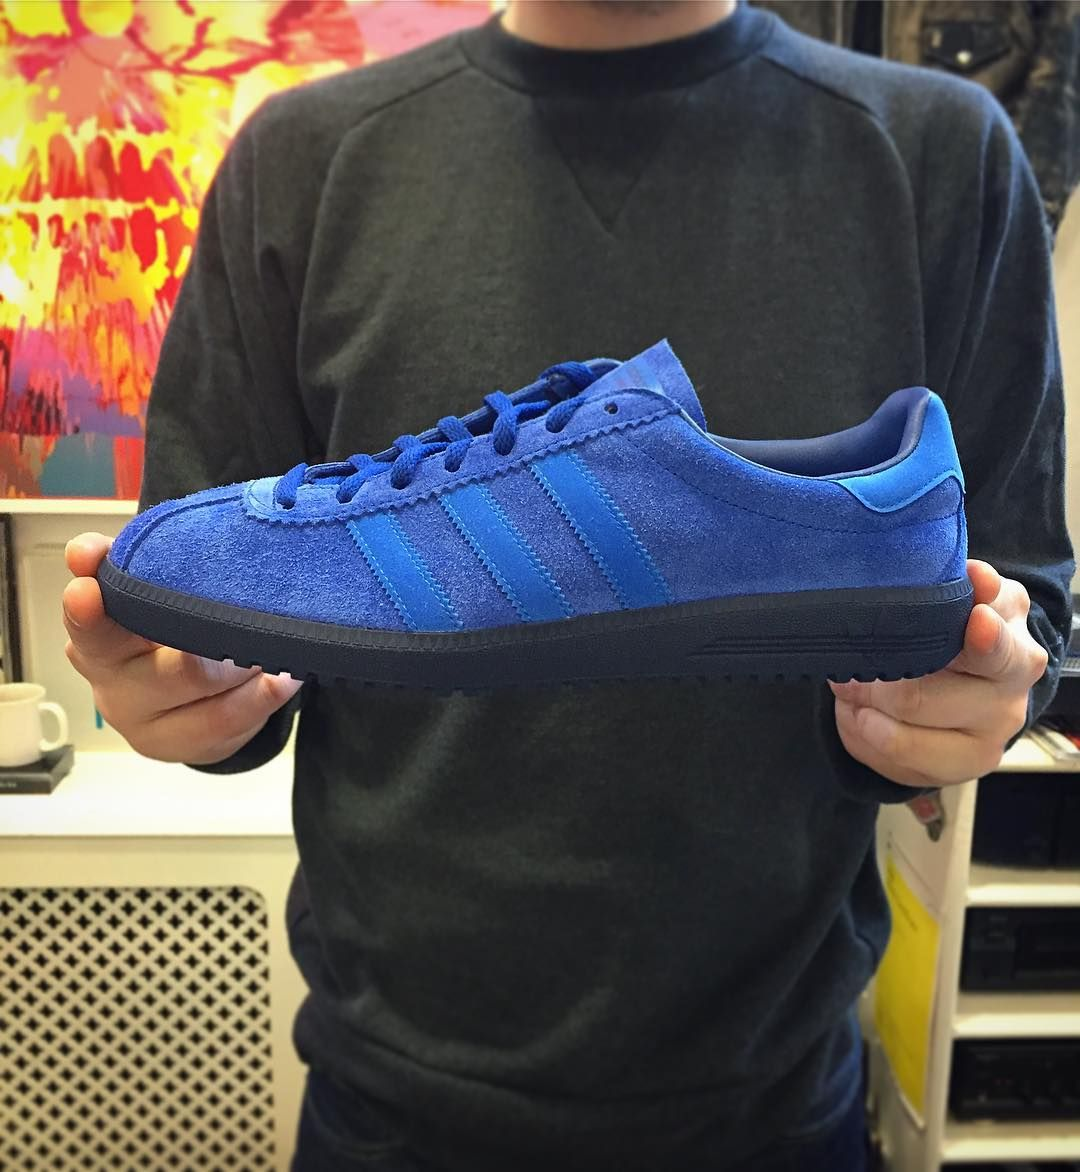 New  adidasoriginals  Bermuda  in royal blue suede are now available in  store and also via our website priced 75.  adidas  adidasoriginals  bermuda  ... cb5c3a118